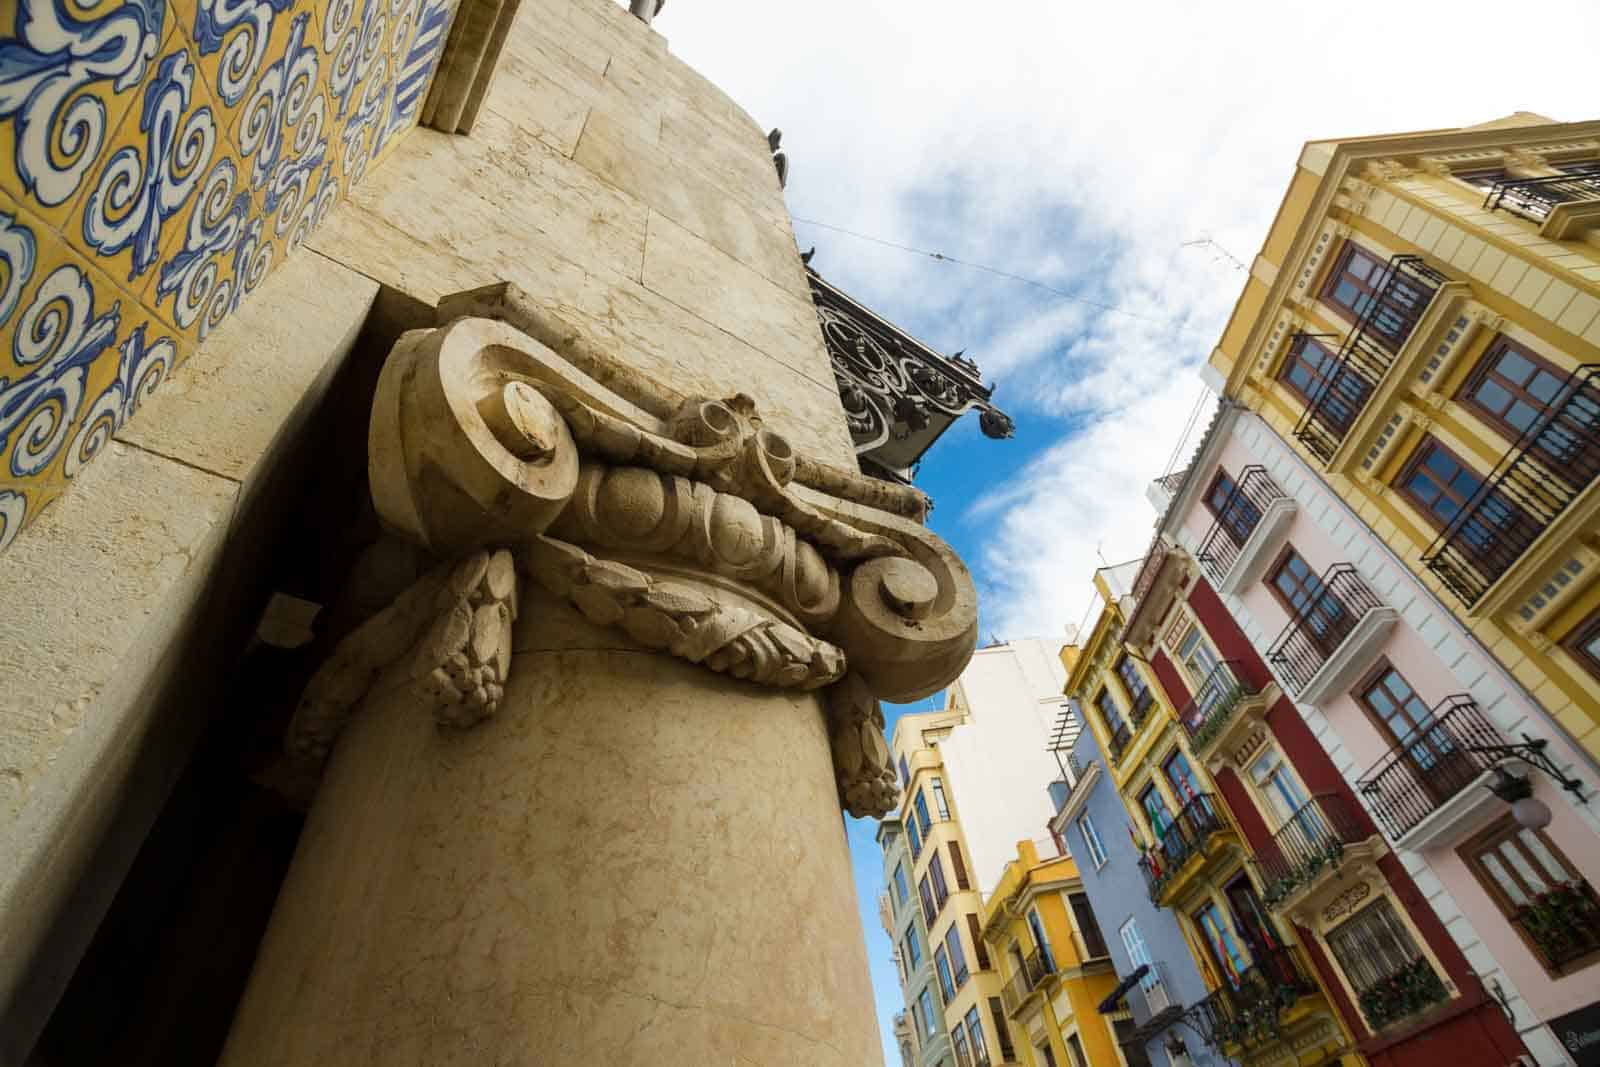 Valencia, home of good design and good food: a column on the side to the entrance to the Mercado Central, central market, in Valencia, Spain, The Mercado Central is a haven for foodies